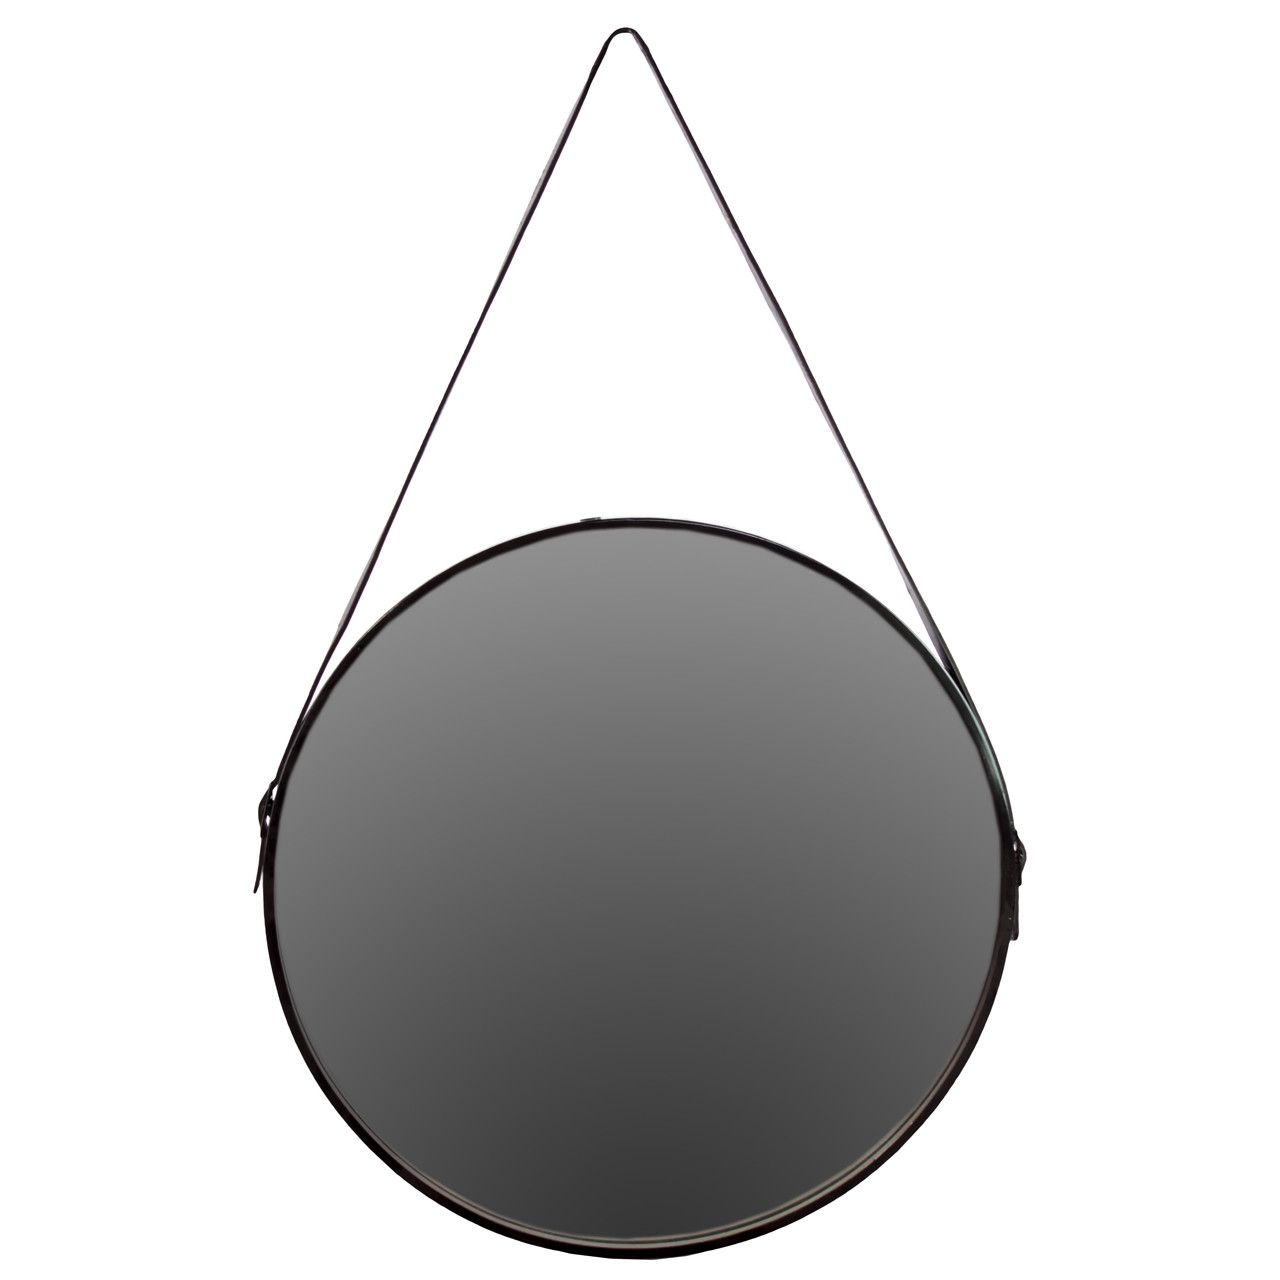 Round Metal Mirror With Rope Part - 46: Urban Trends Metal Round Mirror With Leather Belt Hanger Black